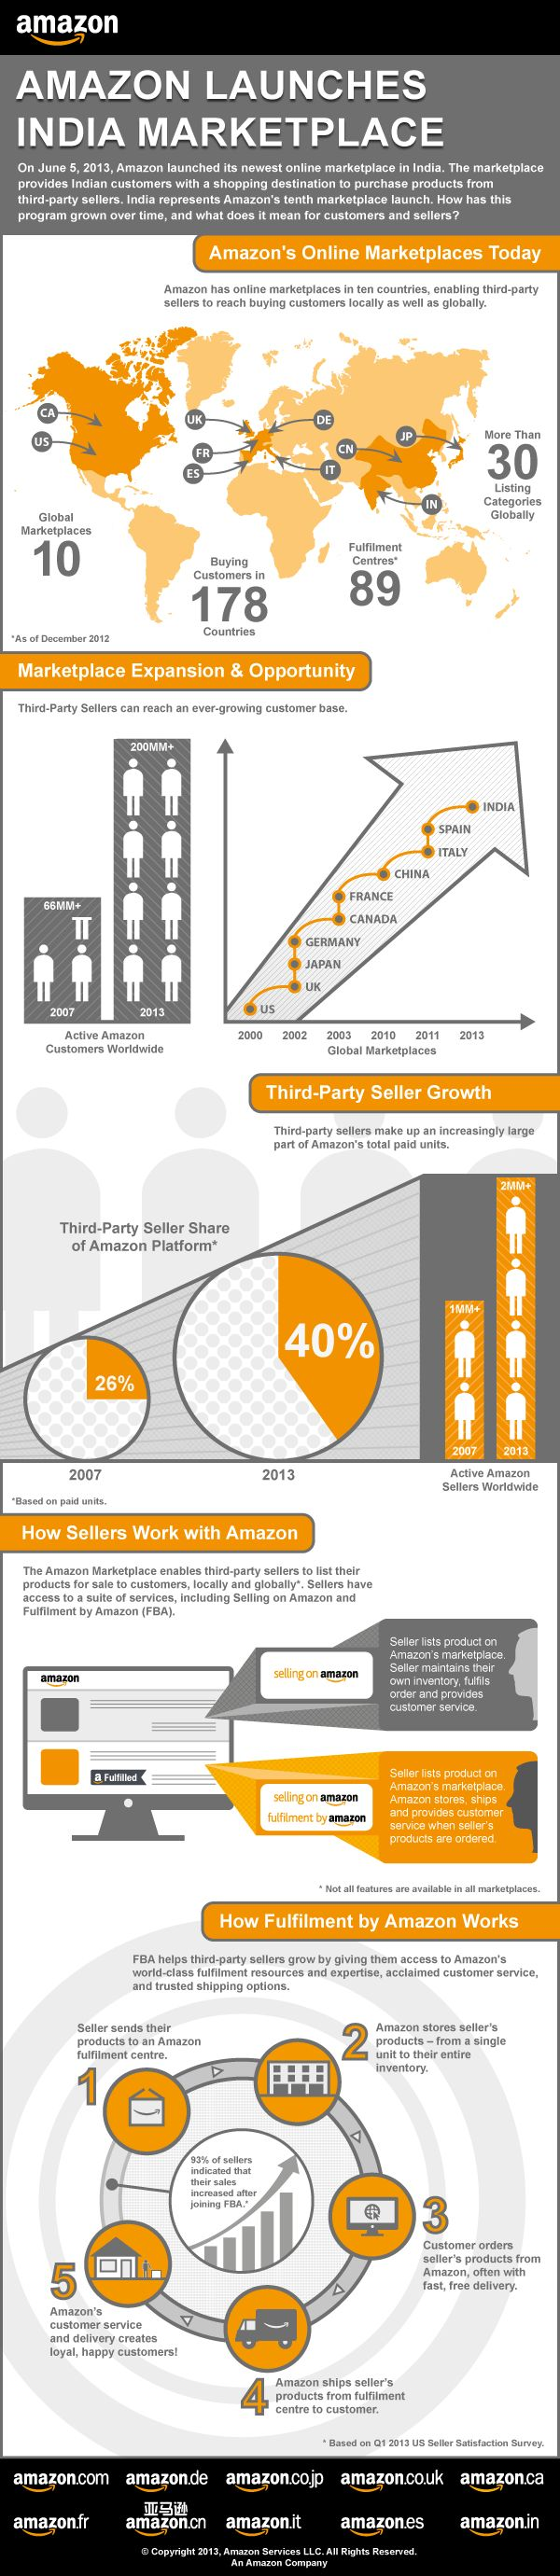 E-commerce in India is heating up today as Amazon (NASDAQ:AMZN) has finally launched its site in India 1 – albeit very quietly. As reported by TheNextWeb, the Amazon India site only sells books for now, and the closest thing we have to a press release from Amazon is this infographic. http://www.techinasia.com/amazon-india-launch/